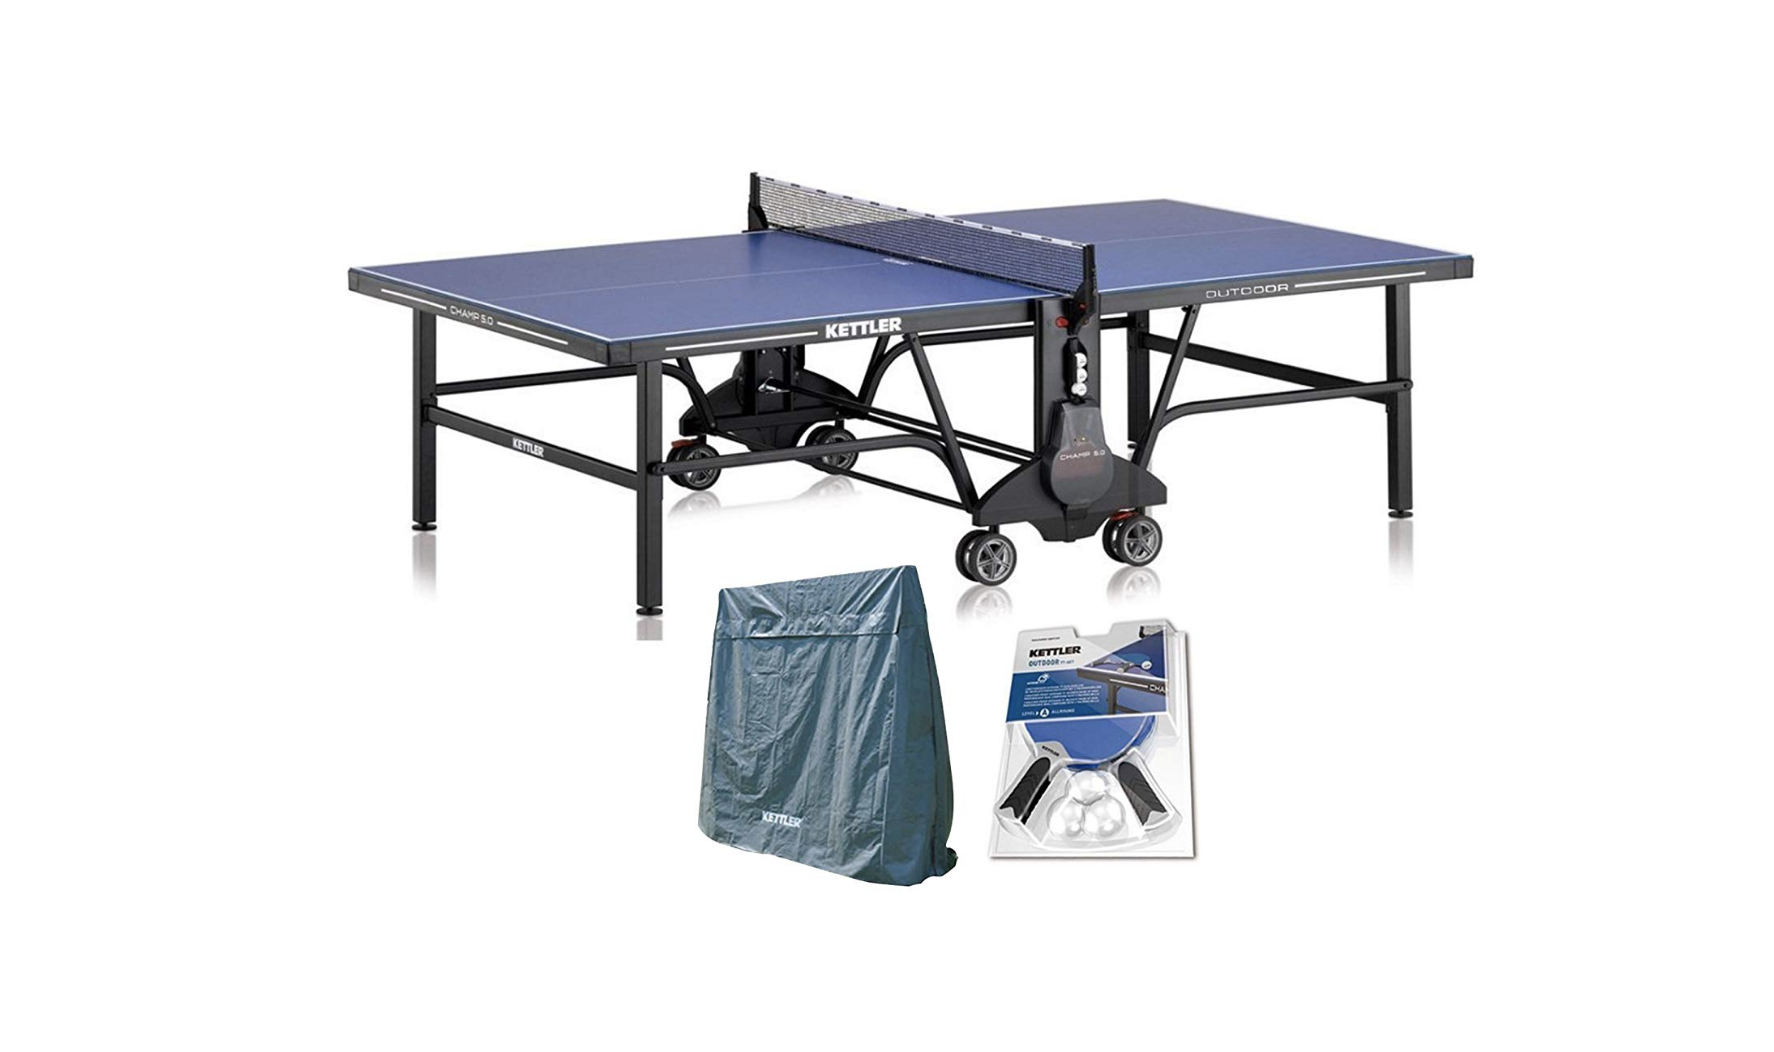 Top 10 Best Table Tennis Tables of 2021 Review